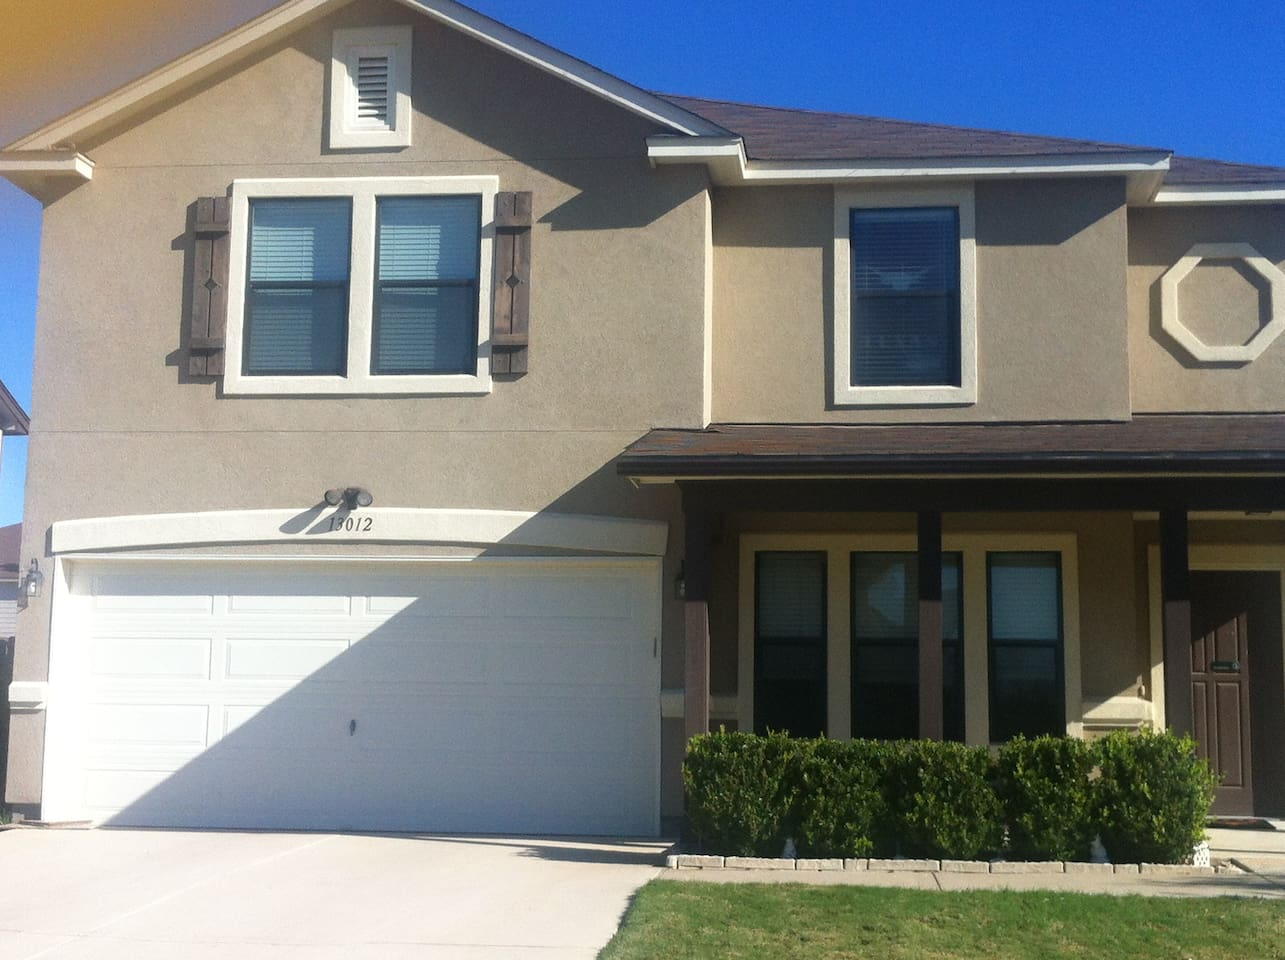 Prime location to F-1 COA and close to Downtown-4 Bedroom, Large Gameroom, Office, 3.5 Bathrooms